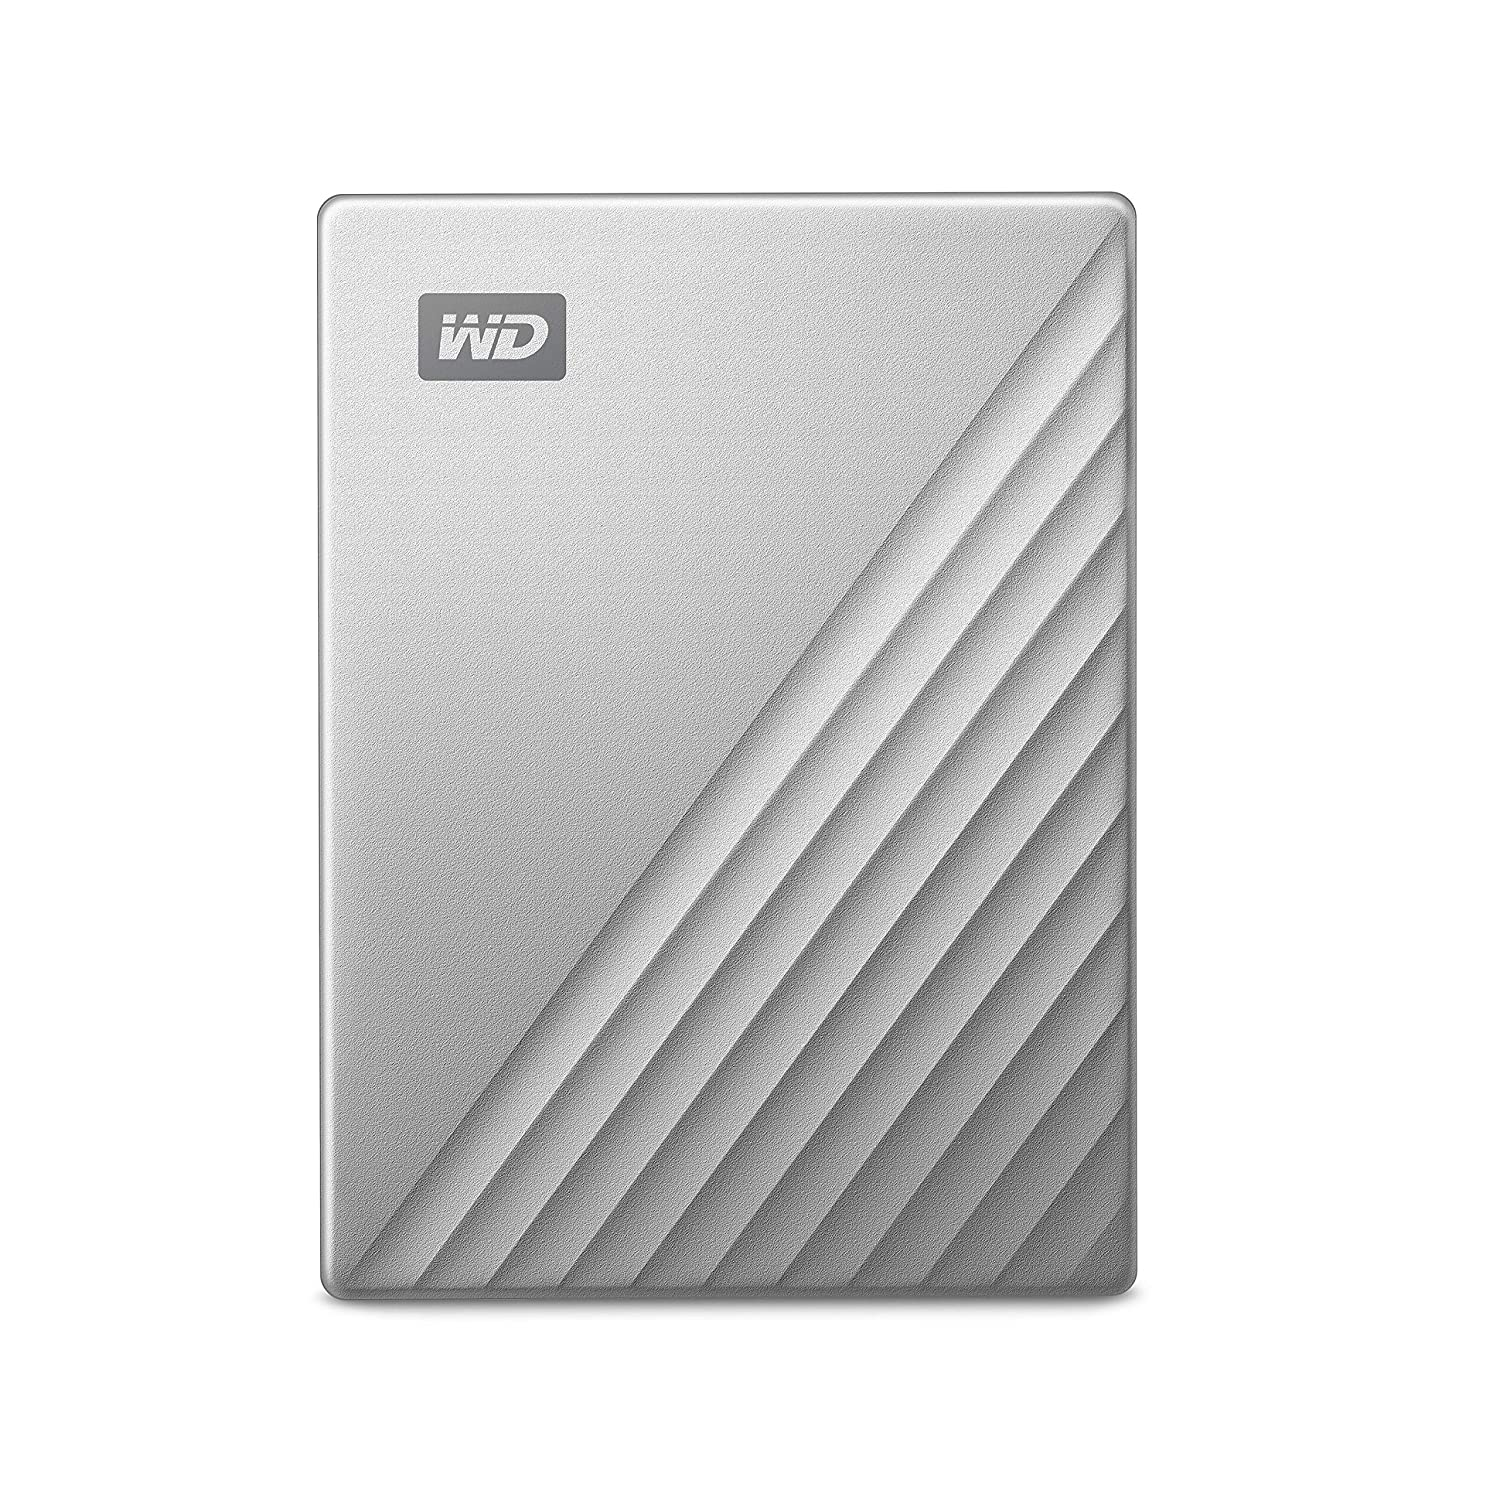 WD 1TB My Passport for Mac Portable External Hard Drive, USB-C/USB-A - WDBFKF0010BBK-WESE